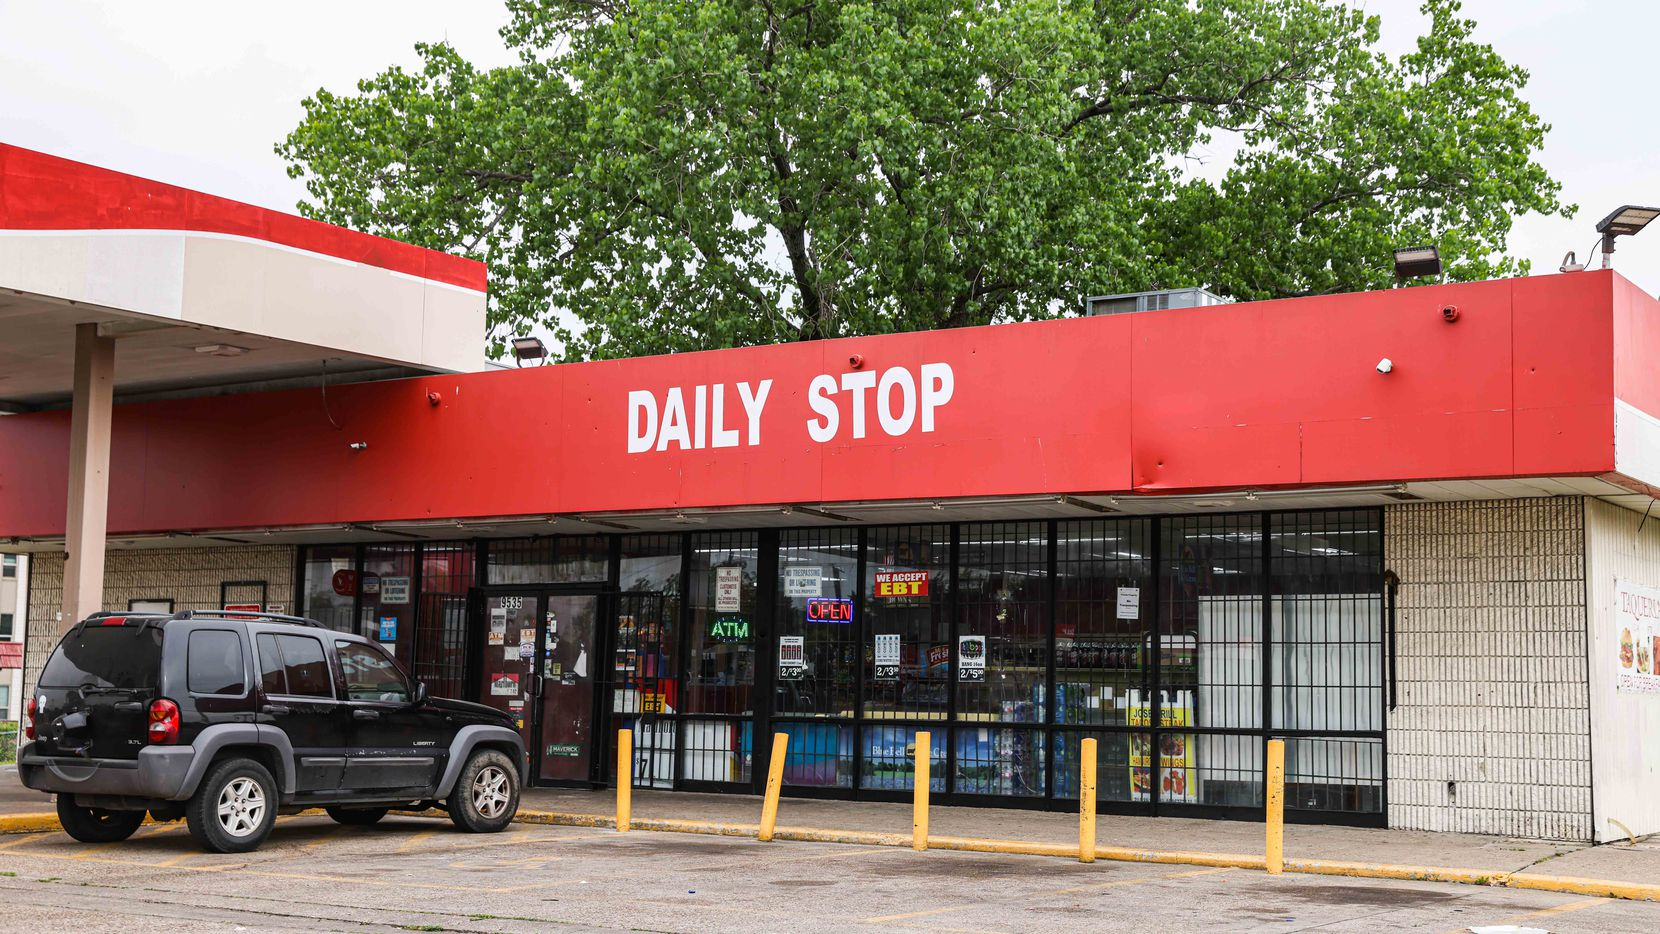 A convenience store located at a gas station between N St Augustine Drive and Bruton Road in Dallas on Monday, April 12, 2021. Malik Tyler, a 13-year-old, was leaving the convenience store with two friends on Tuesday, June 4, 2019, as a vehicle passing on Bruton, opened fire on one parked at the store. Malik was shot once in the chest and died at a local hospital. (Lola Gomez/The Dallas Morning News)